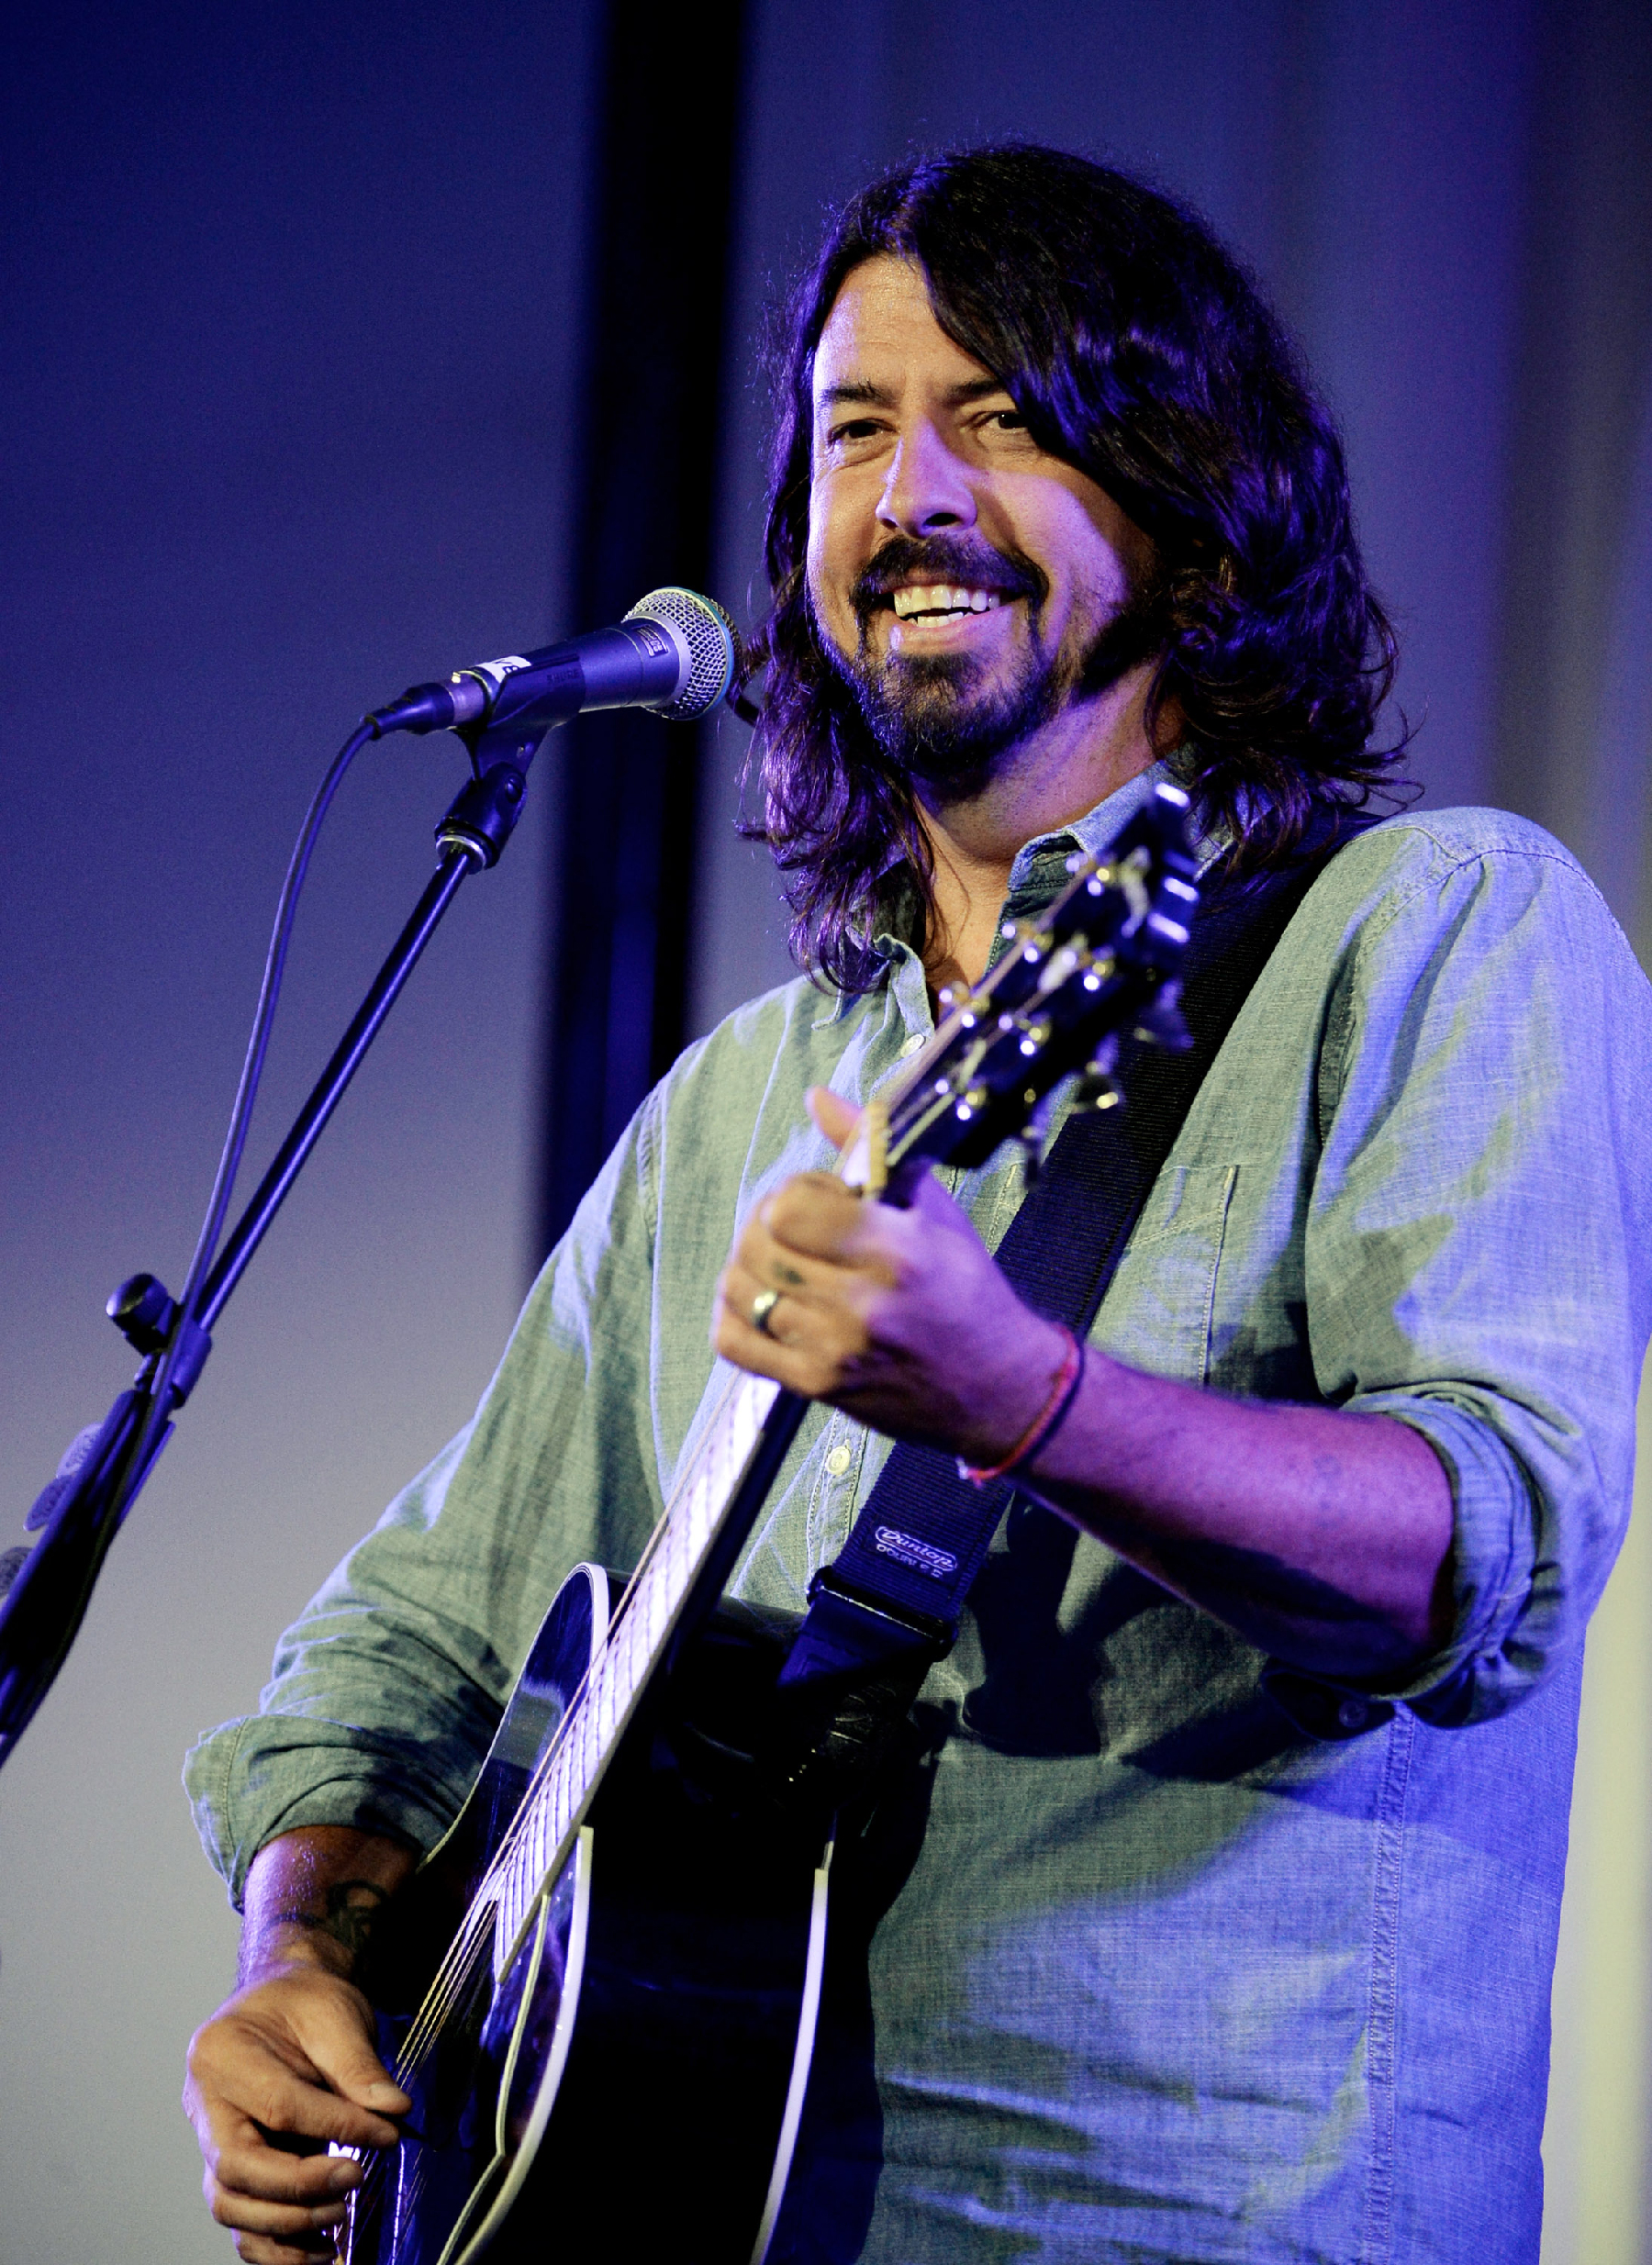 Dave Grohl Confirms New Foo Fighters Album, Details HBO Doc Series